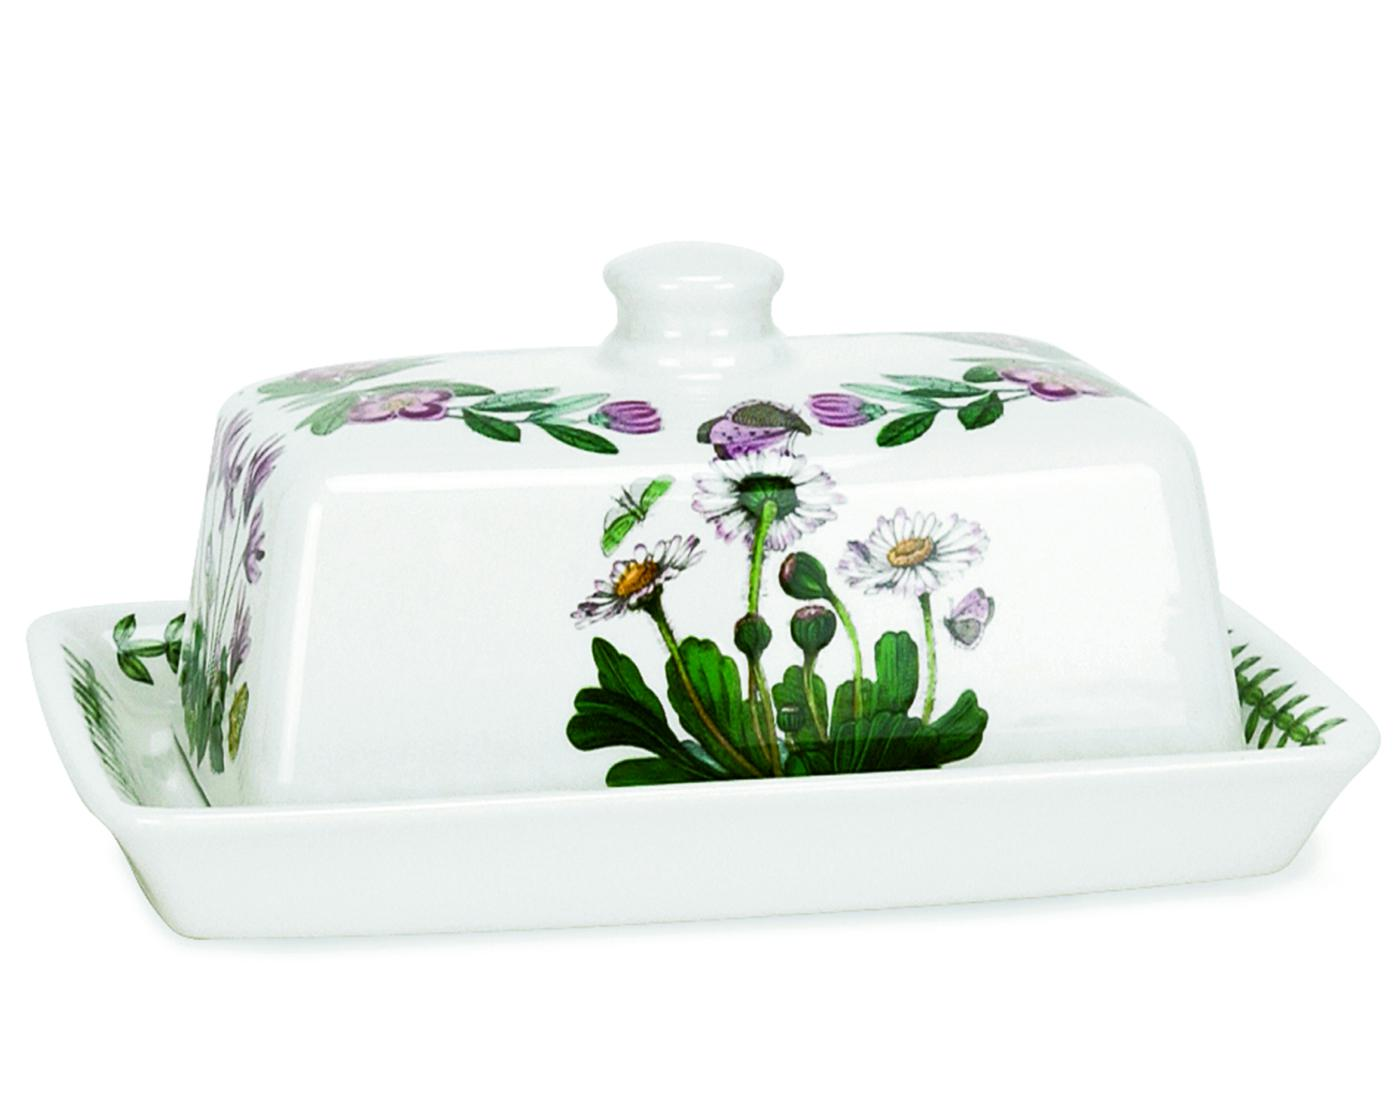 Botanic Garden 6 Inch Covered Butter Dish image number 0